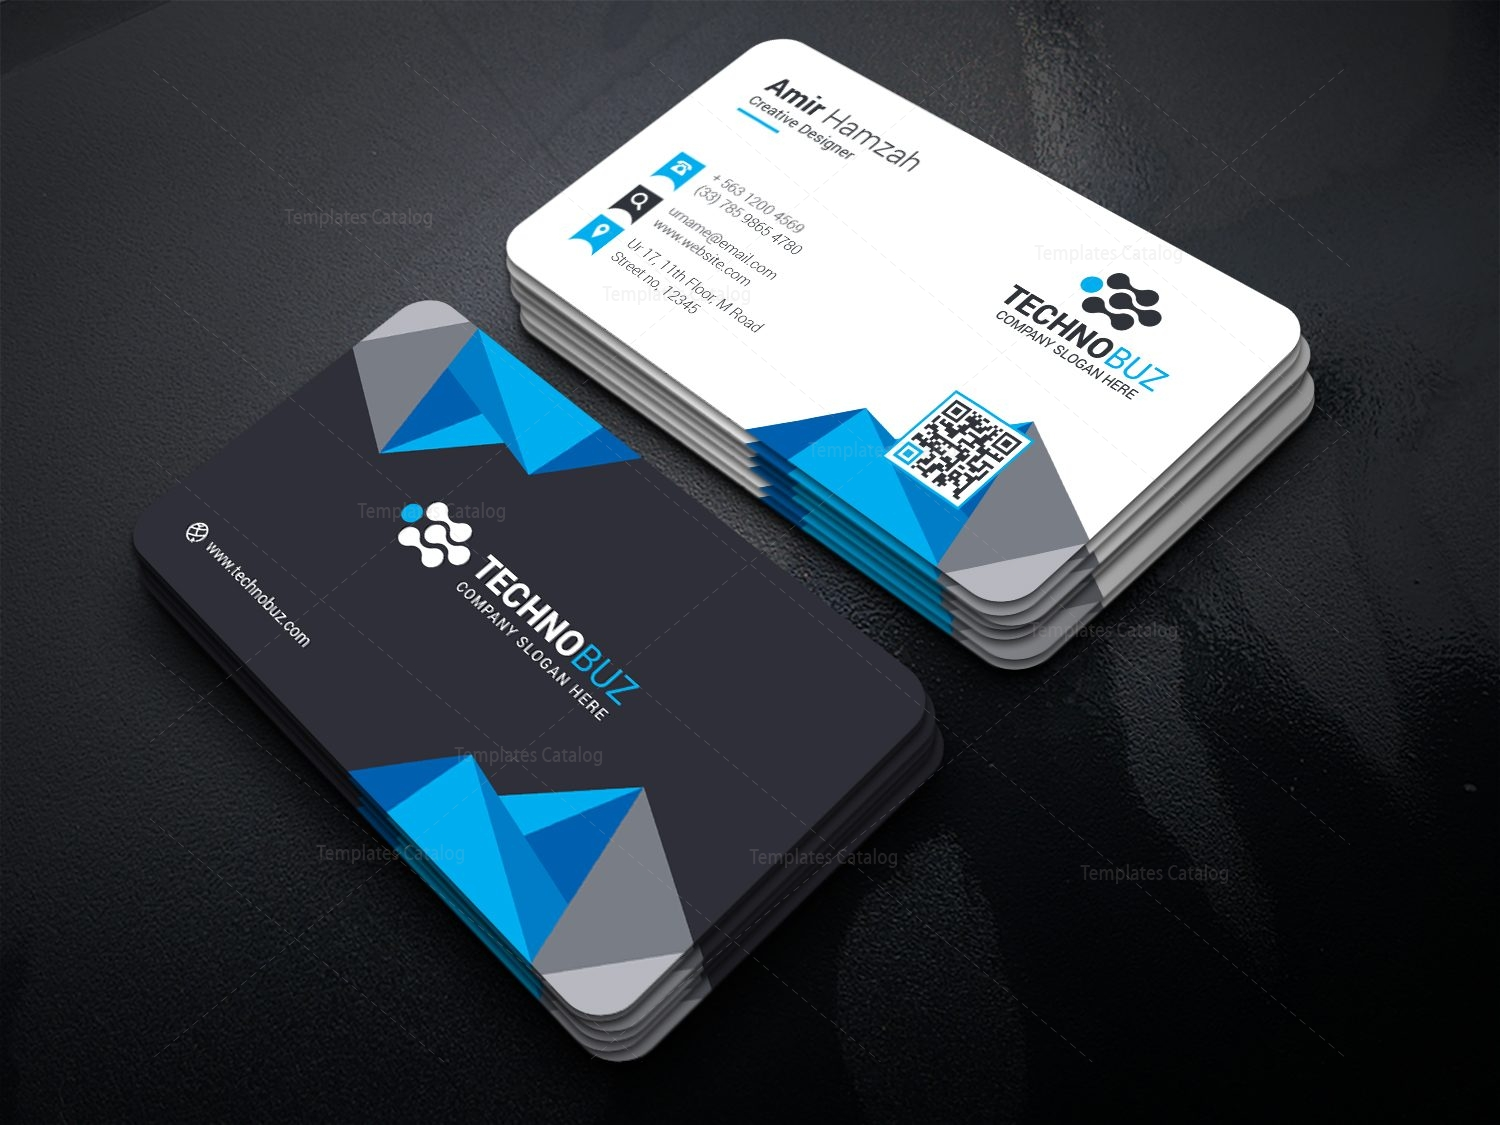 diamond premium stylish business card template 000813 template catalog